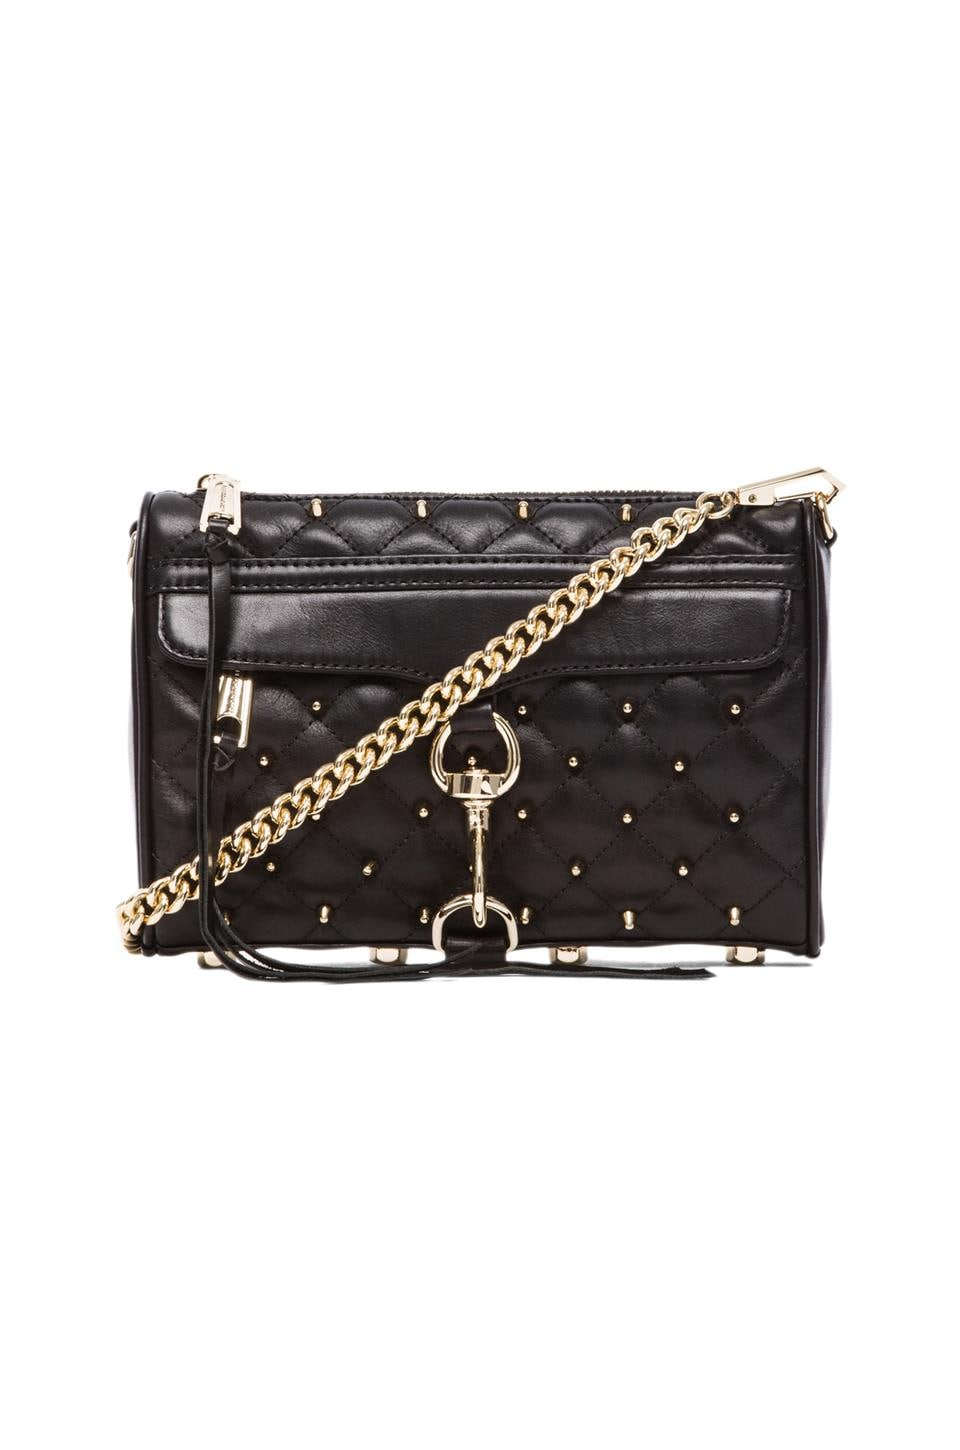 Rebecca Minkoff Mini Mac w/ Studs in Black & Light Gold